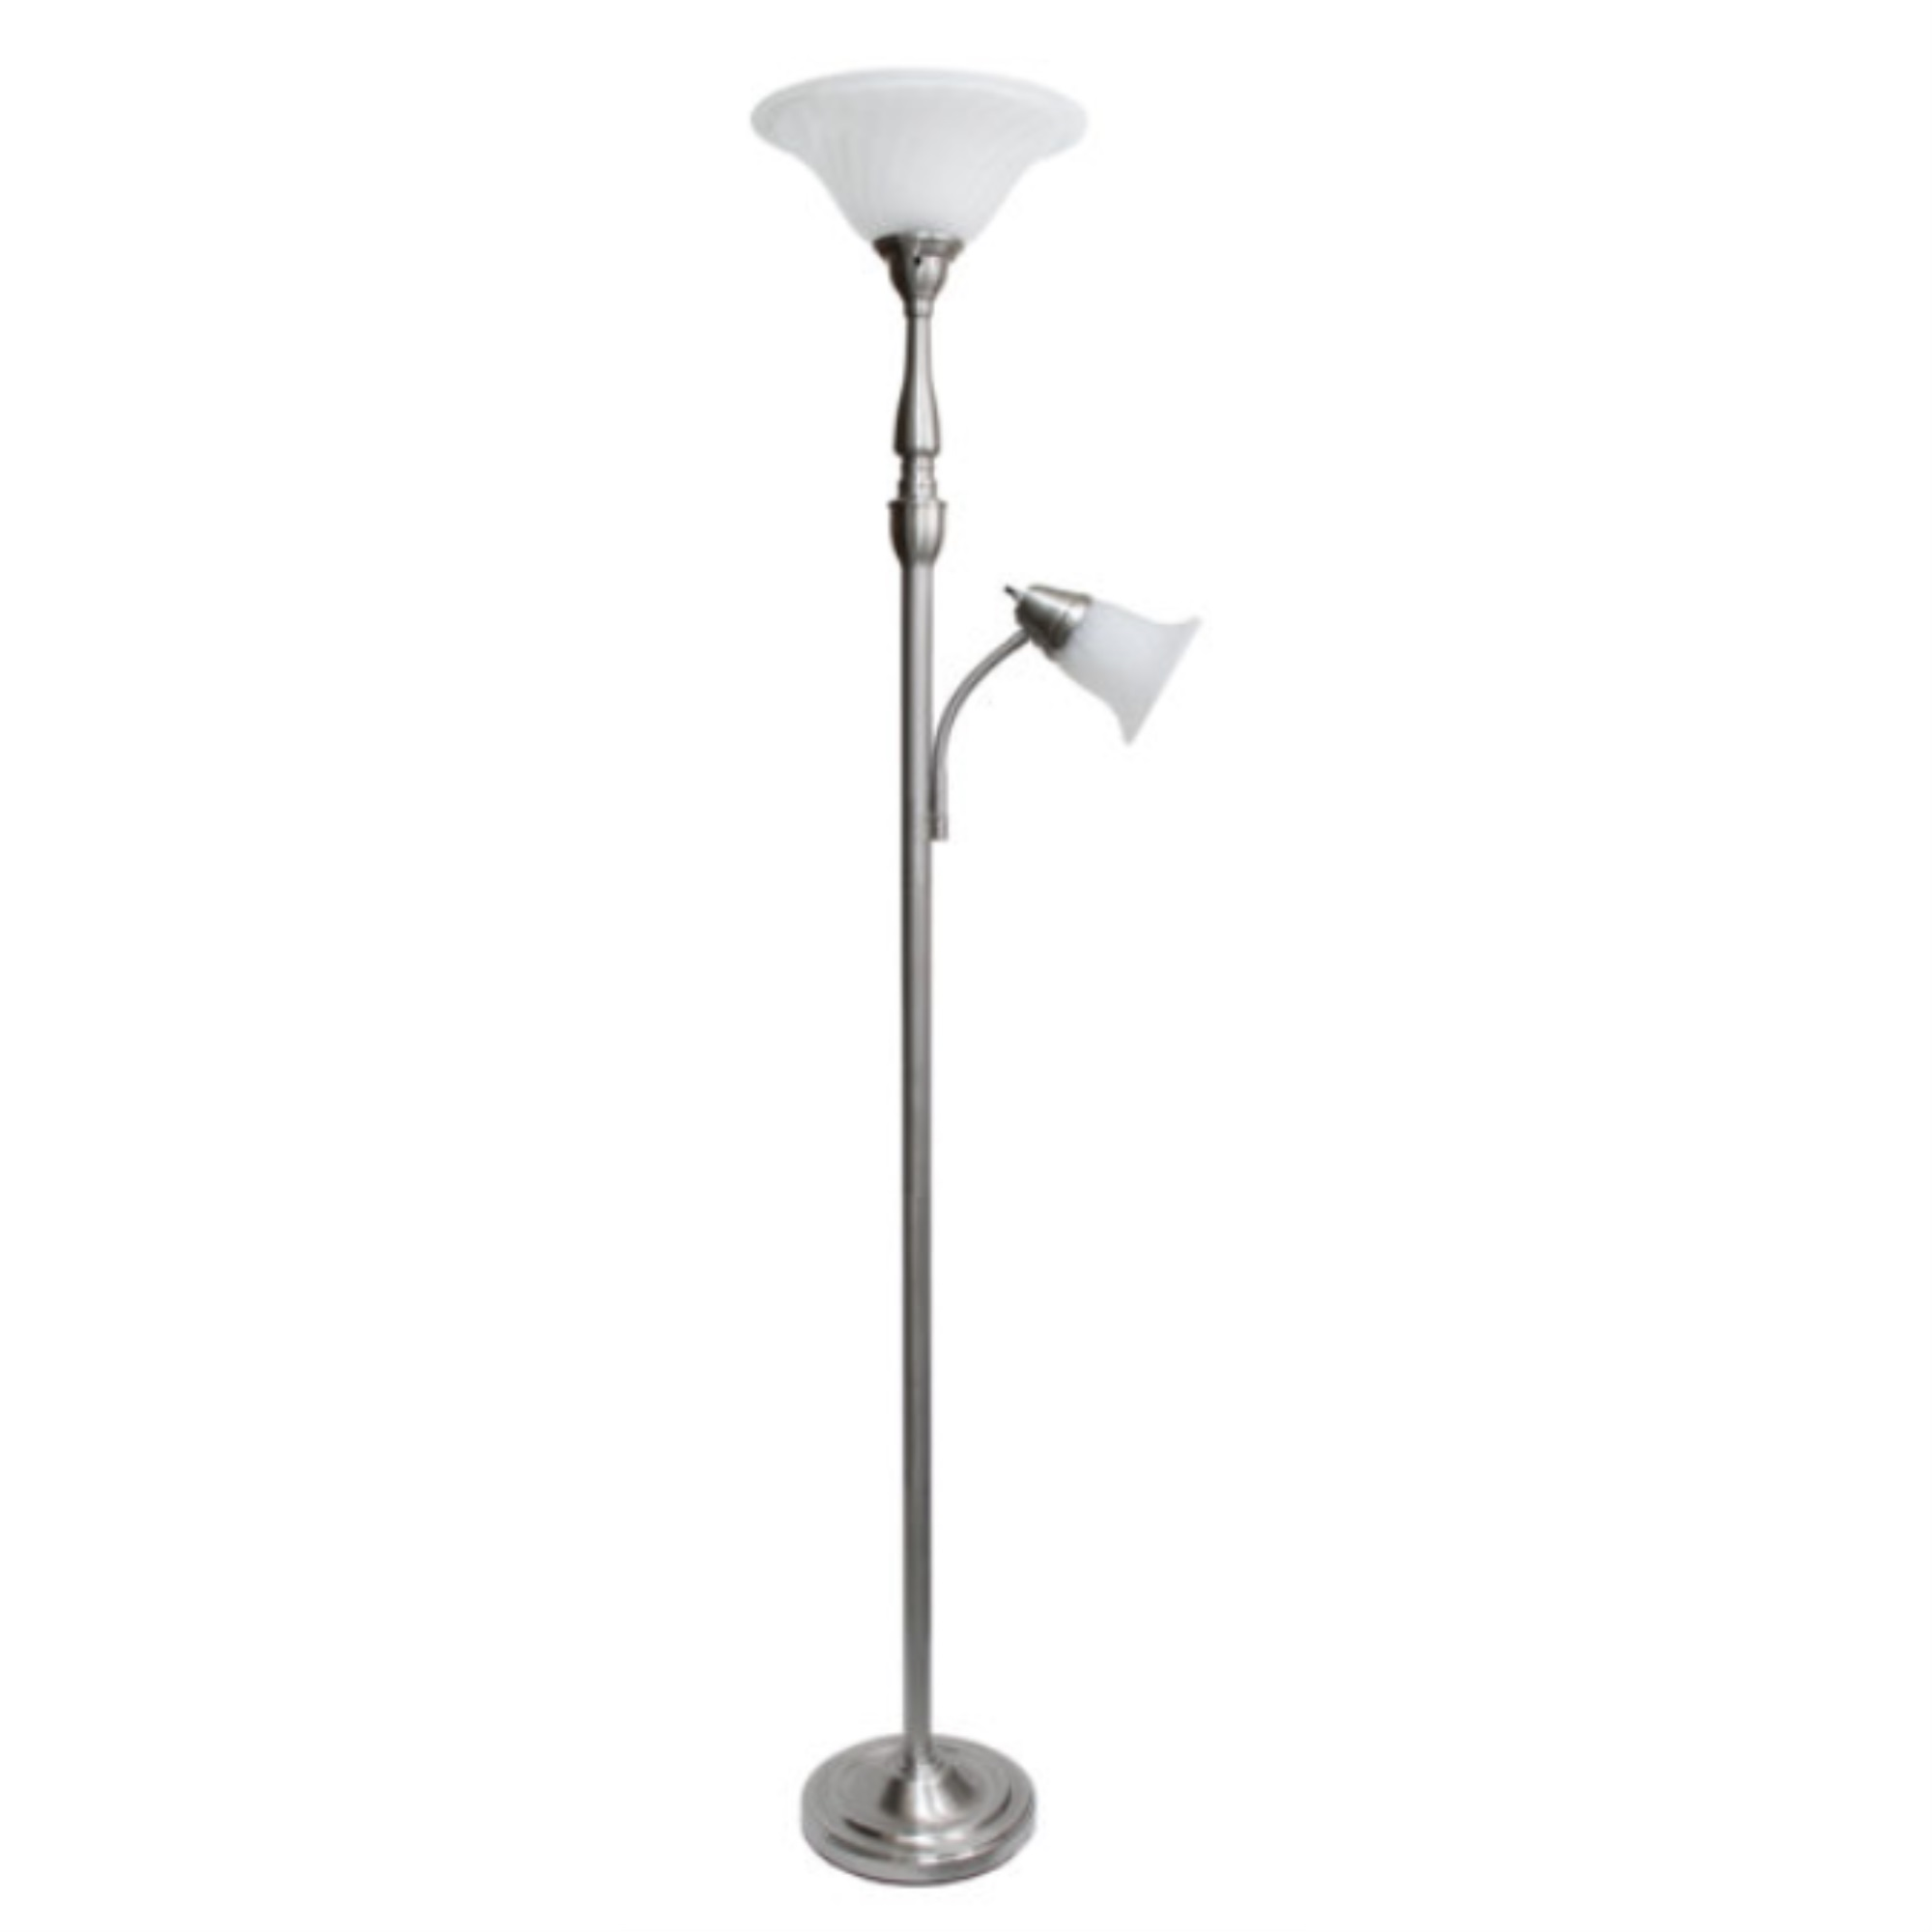 Elegant Designs 2 Light Mother Daughter Floor Lamp with White Marble Glass, Brushed Nickel